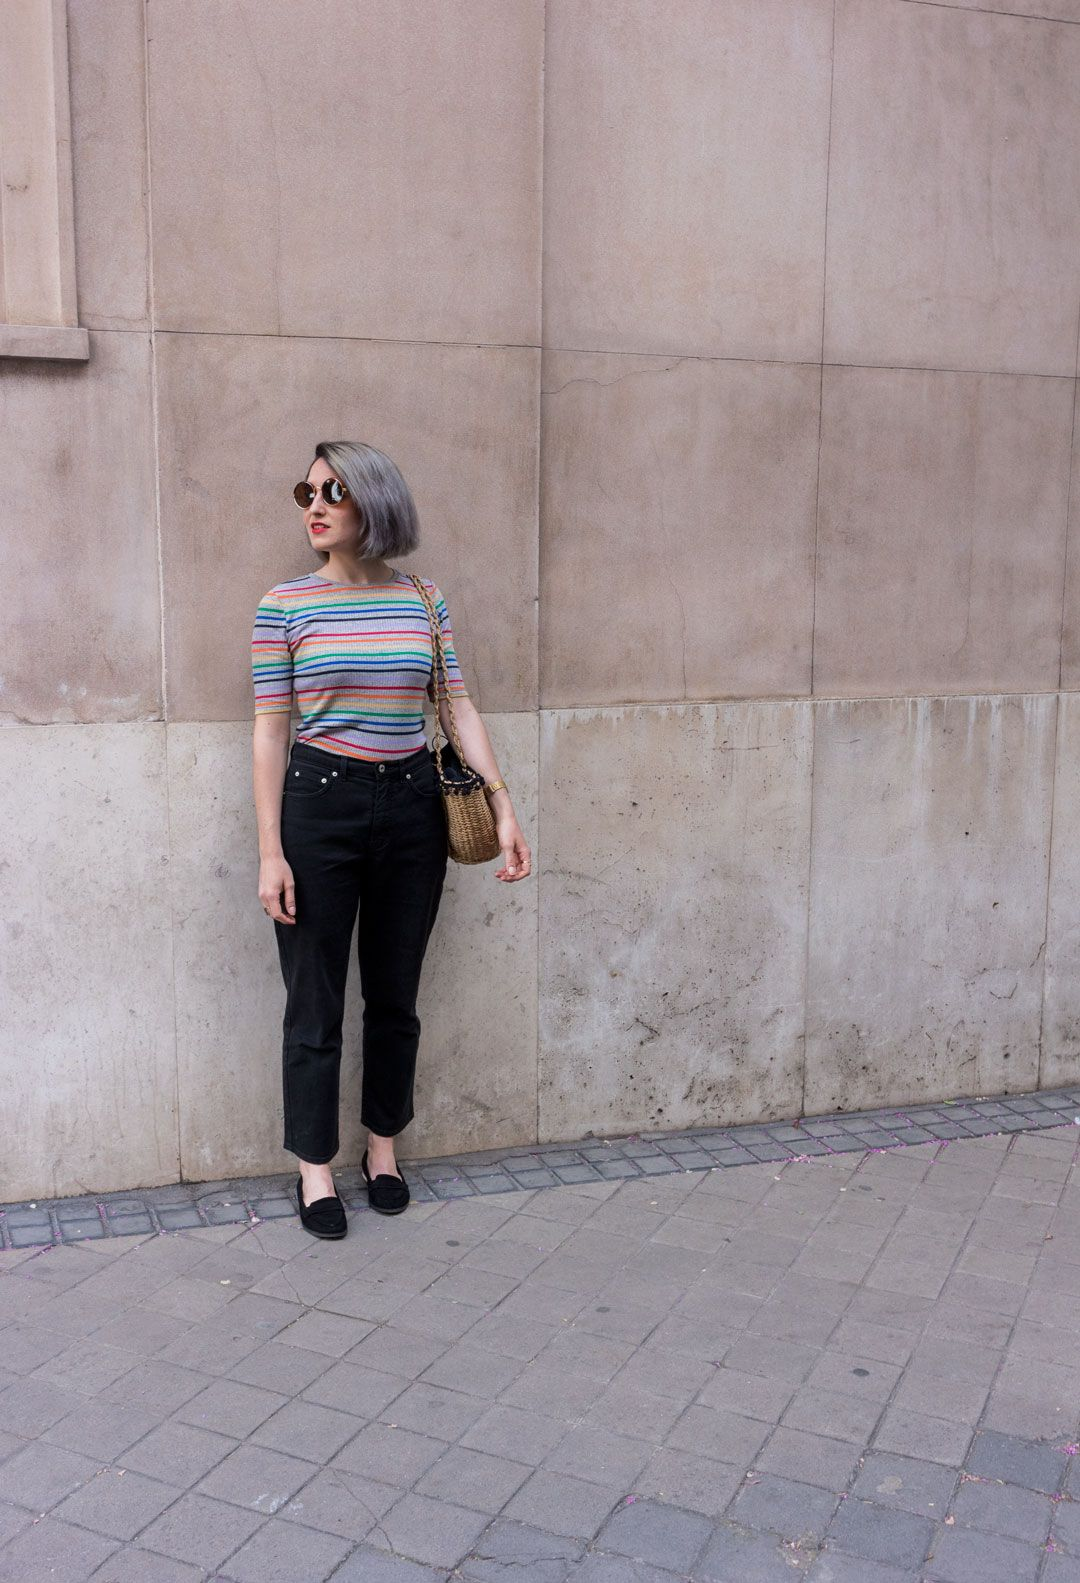 She talks Glam | Rainbow tee, black mom jeans and woven straw bag with black pom pomps | Casual chic outfit | Madrid streetstyle